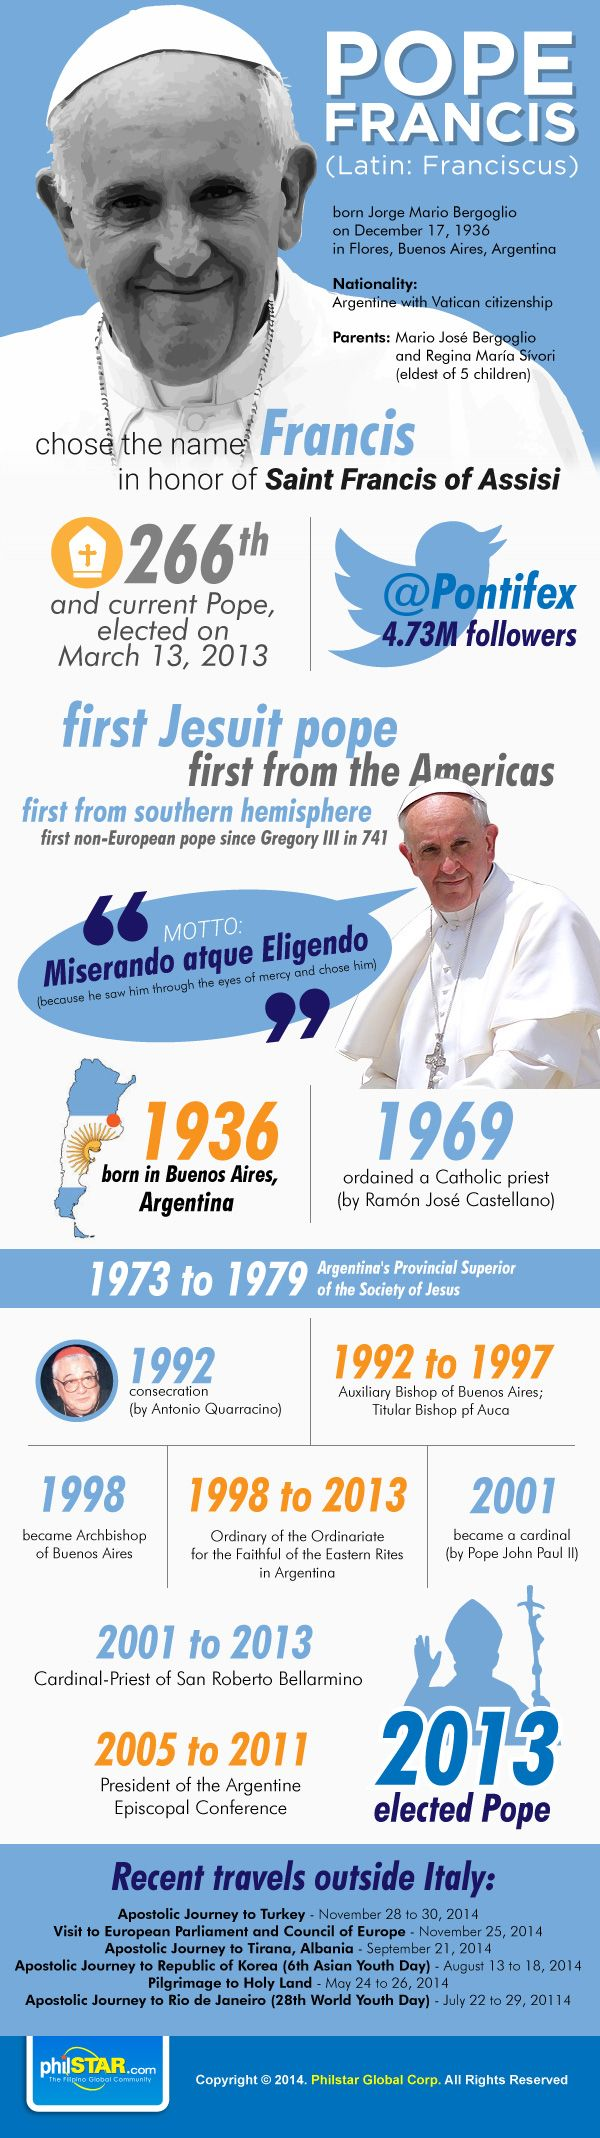 INFOGRAPHIC: Pope Francis' road to the papacy | News Feature, News, The Philippine Star | philstar.com